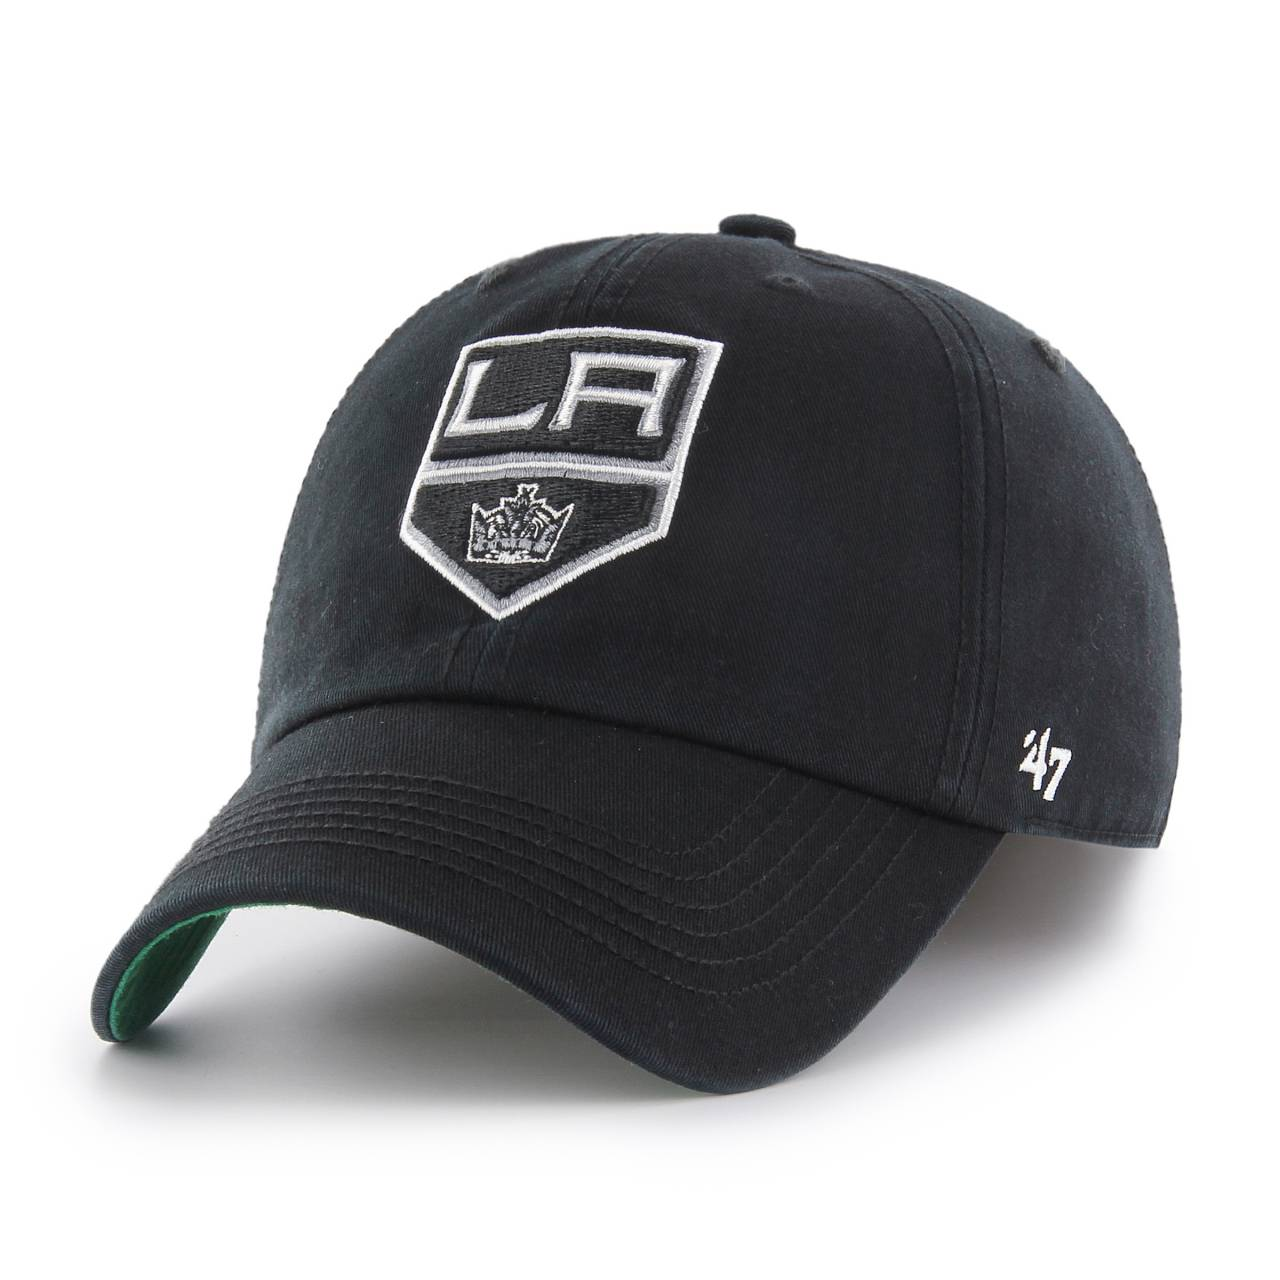 NHL LOS ANGELES KINGS '47 FRANCHISE FITTED CAP